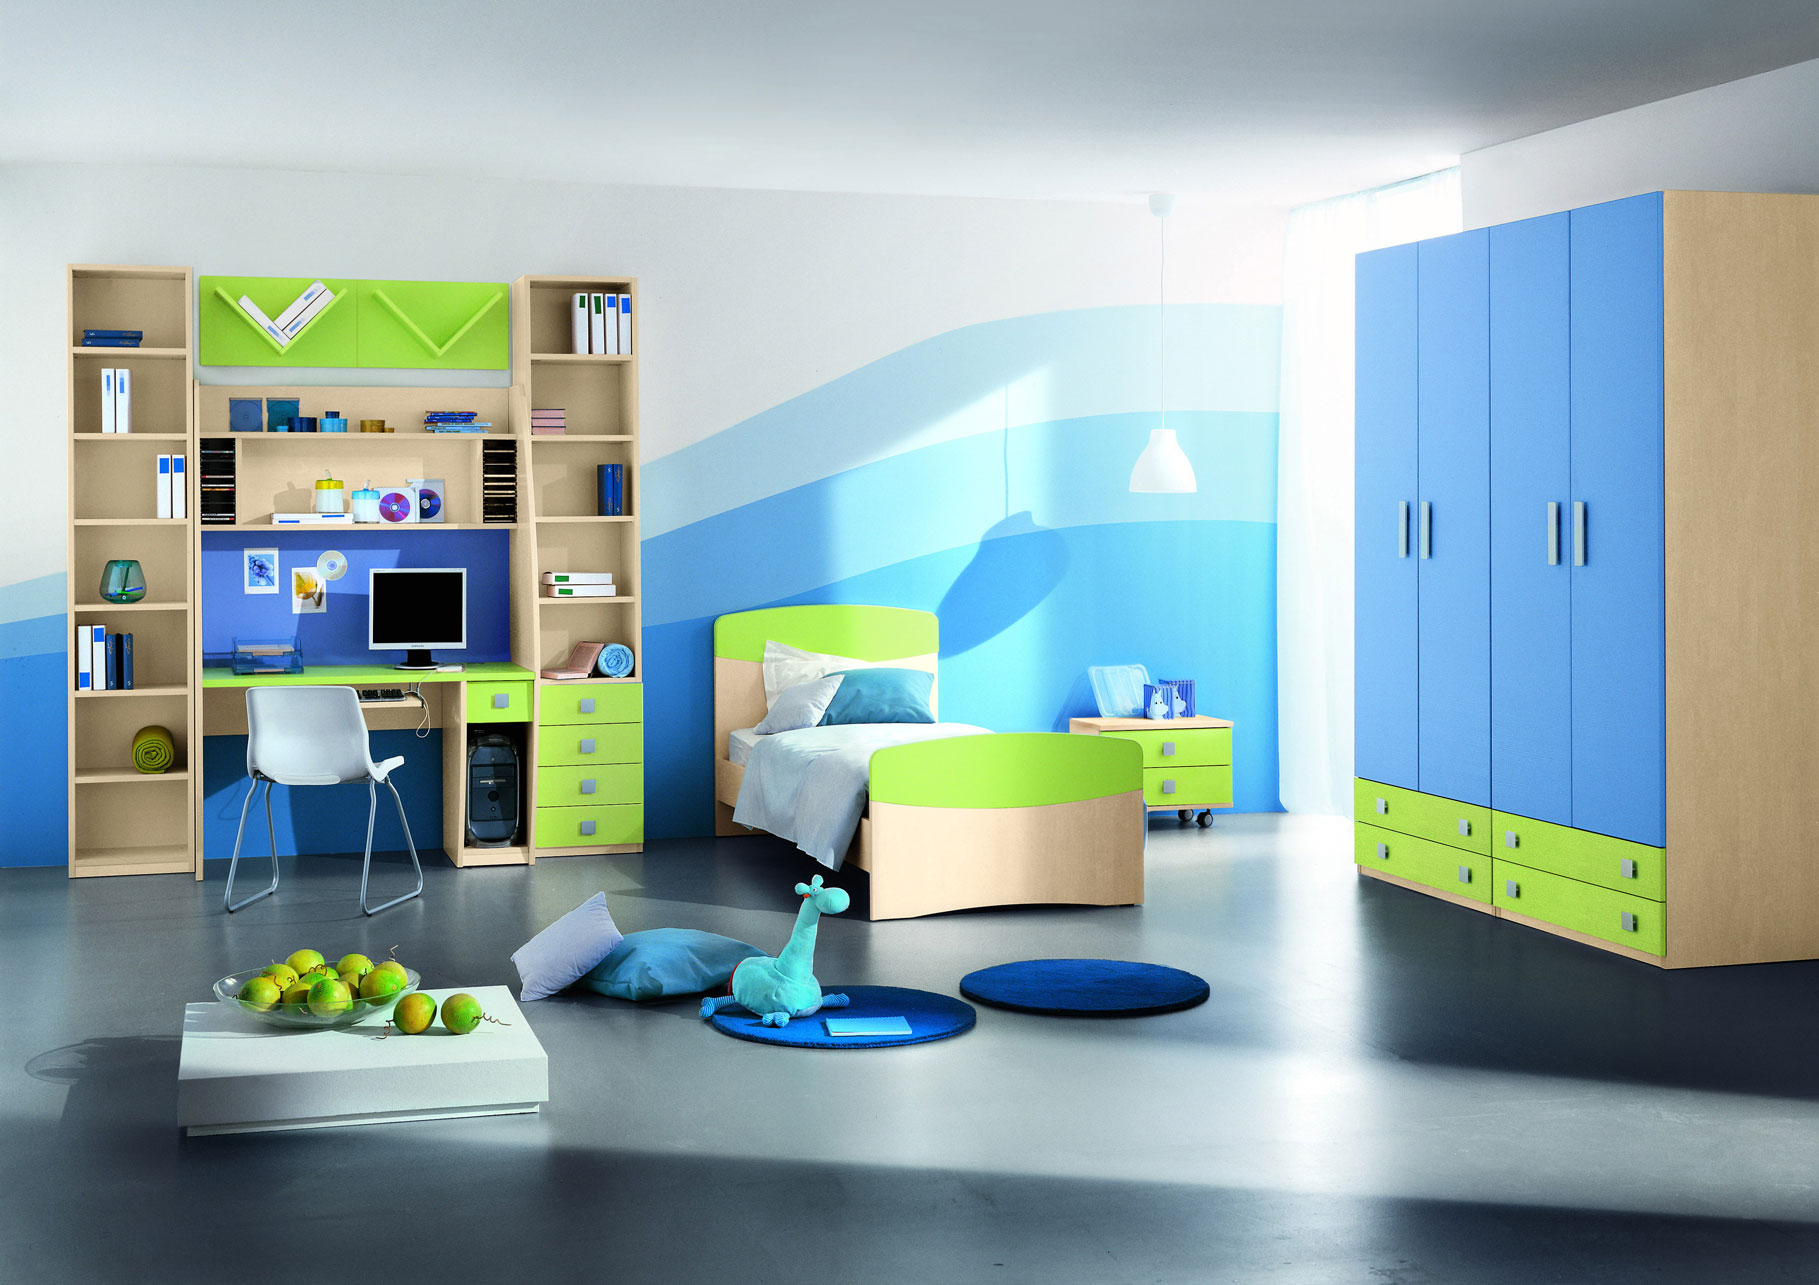 Marvelous Design Of The Bedroom Kids Areas Added With Blue Wardrobe With Black Tile Floor Ideas As The Furniture Kids Bedroom Ideas